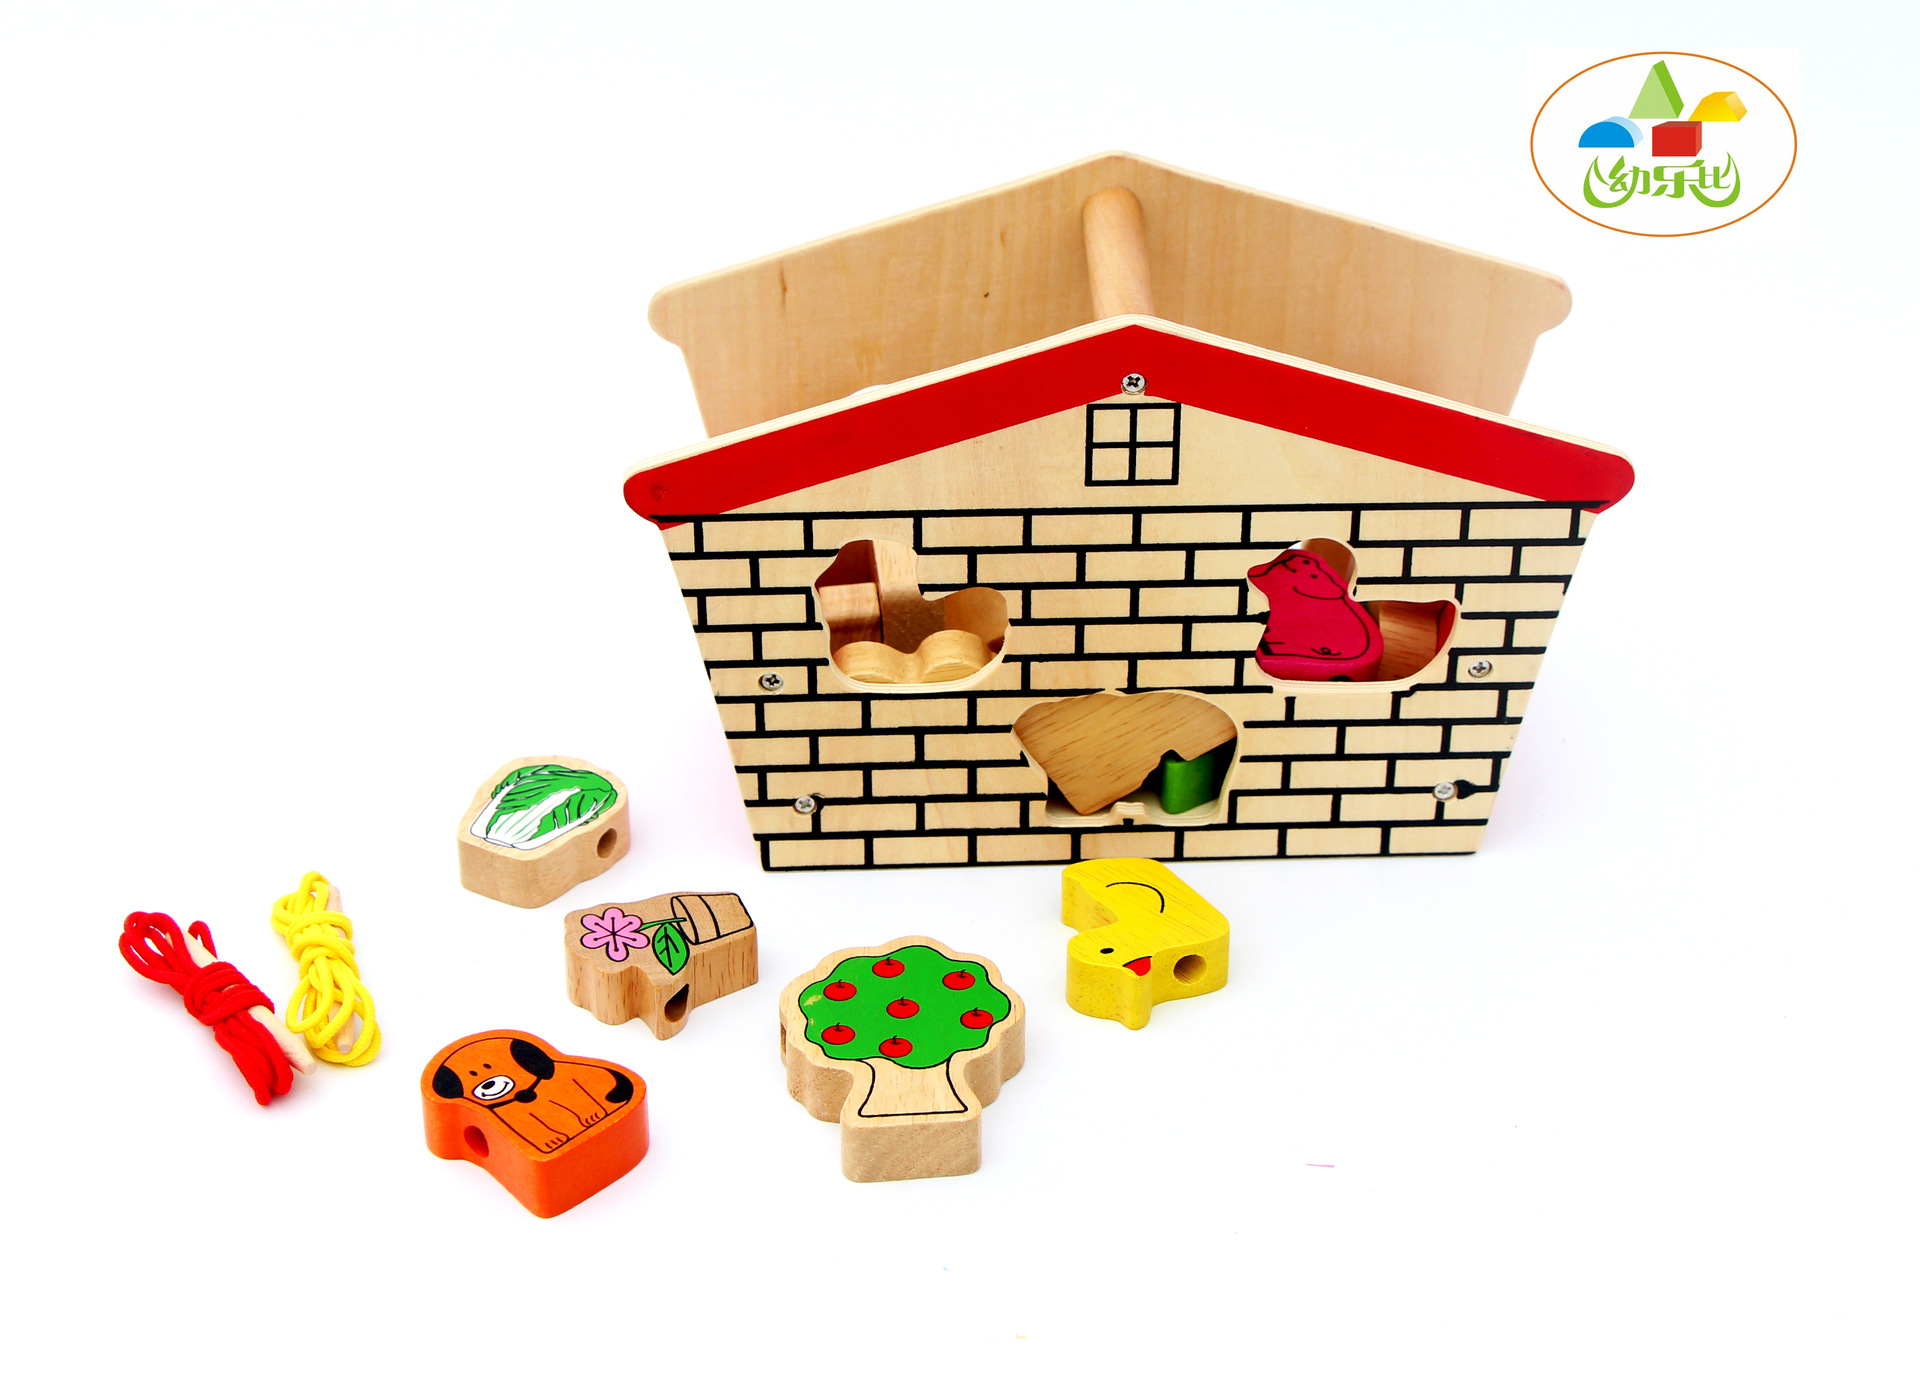 Long-term Color & Vegetable Farm Bead Toy Environmentally Friendly Wood Infant Educational Bead Toy